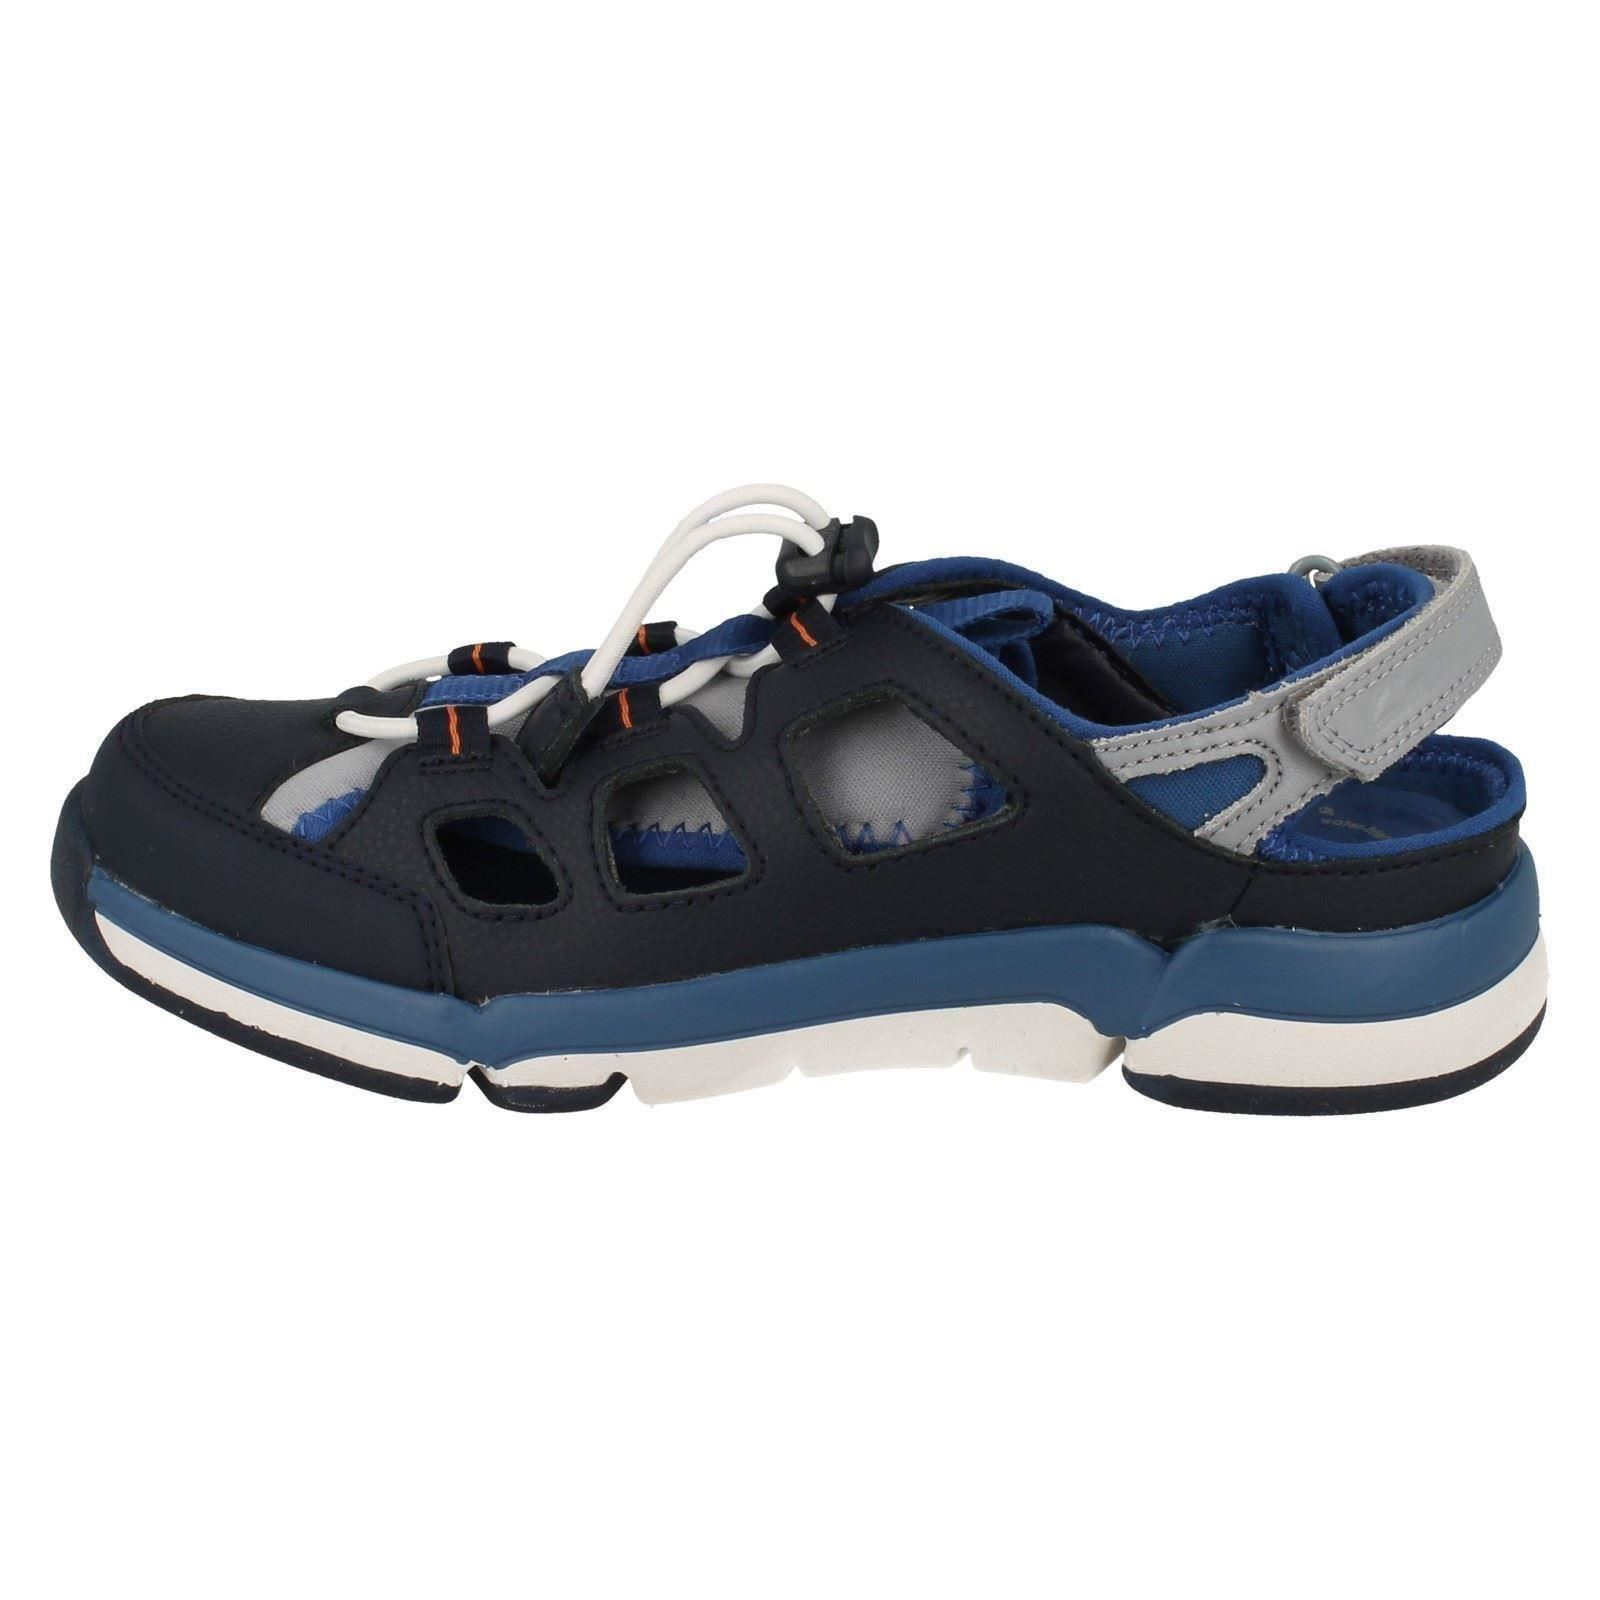 Magic Boys Clarks blu Tri Sandali Sandali IP8wzqSxn